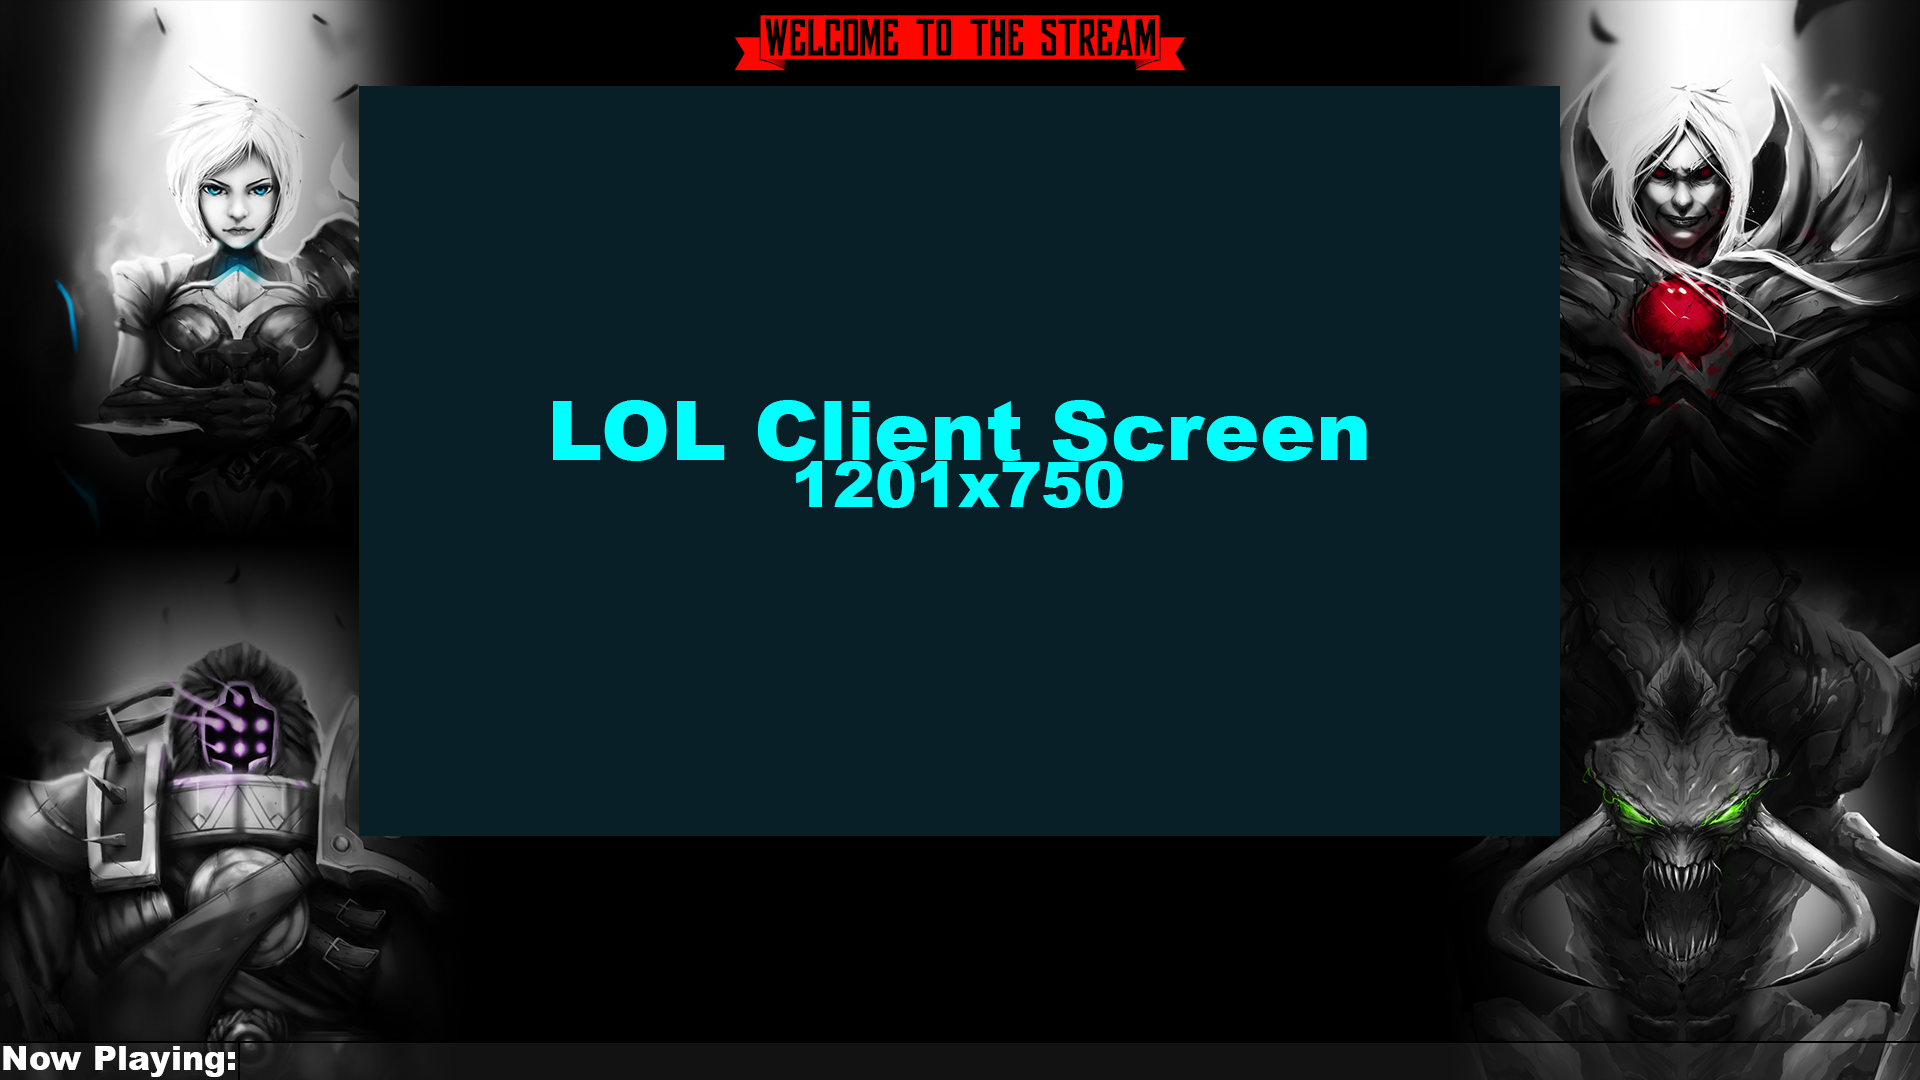 Stream Overlay Of Lolclient S6 Ftw Angelus By Uberwild On Deviantart